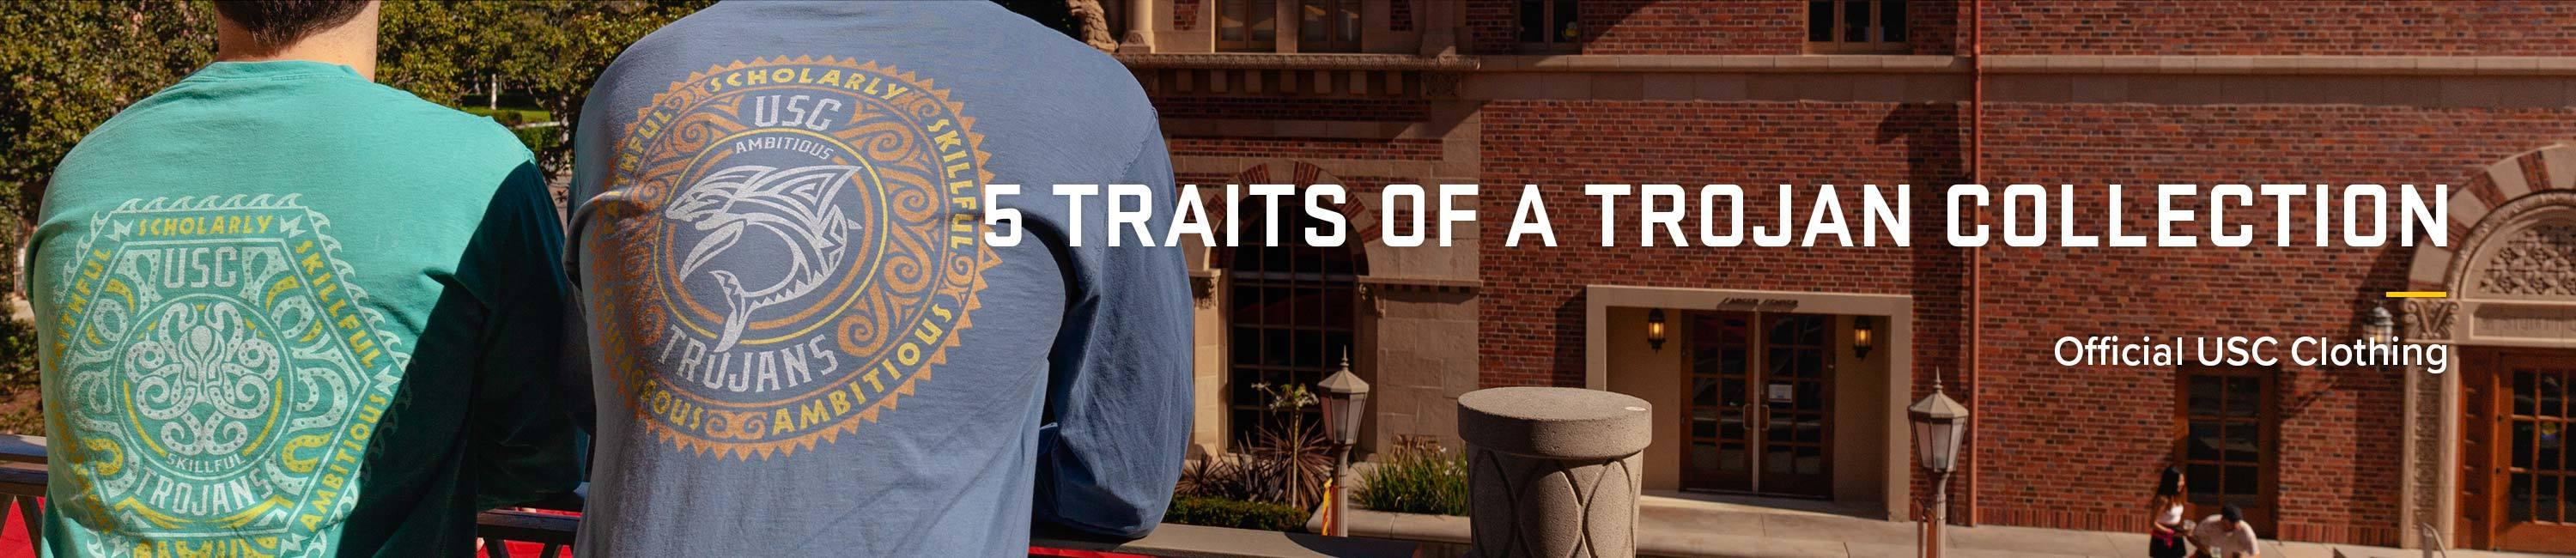 USC Five Traits of a Trojan